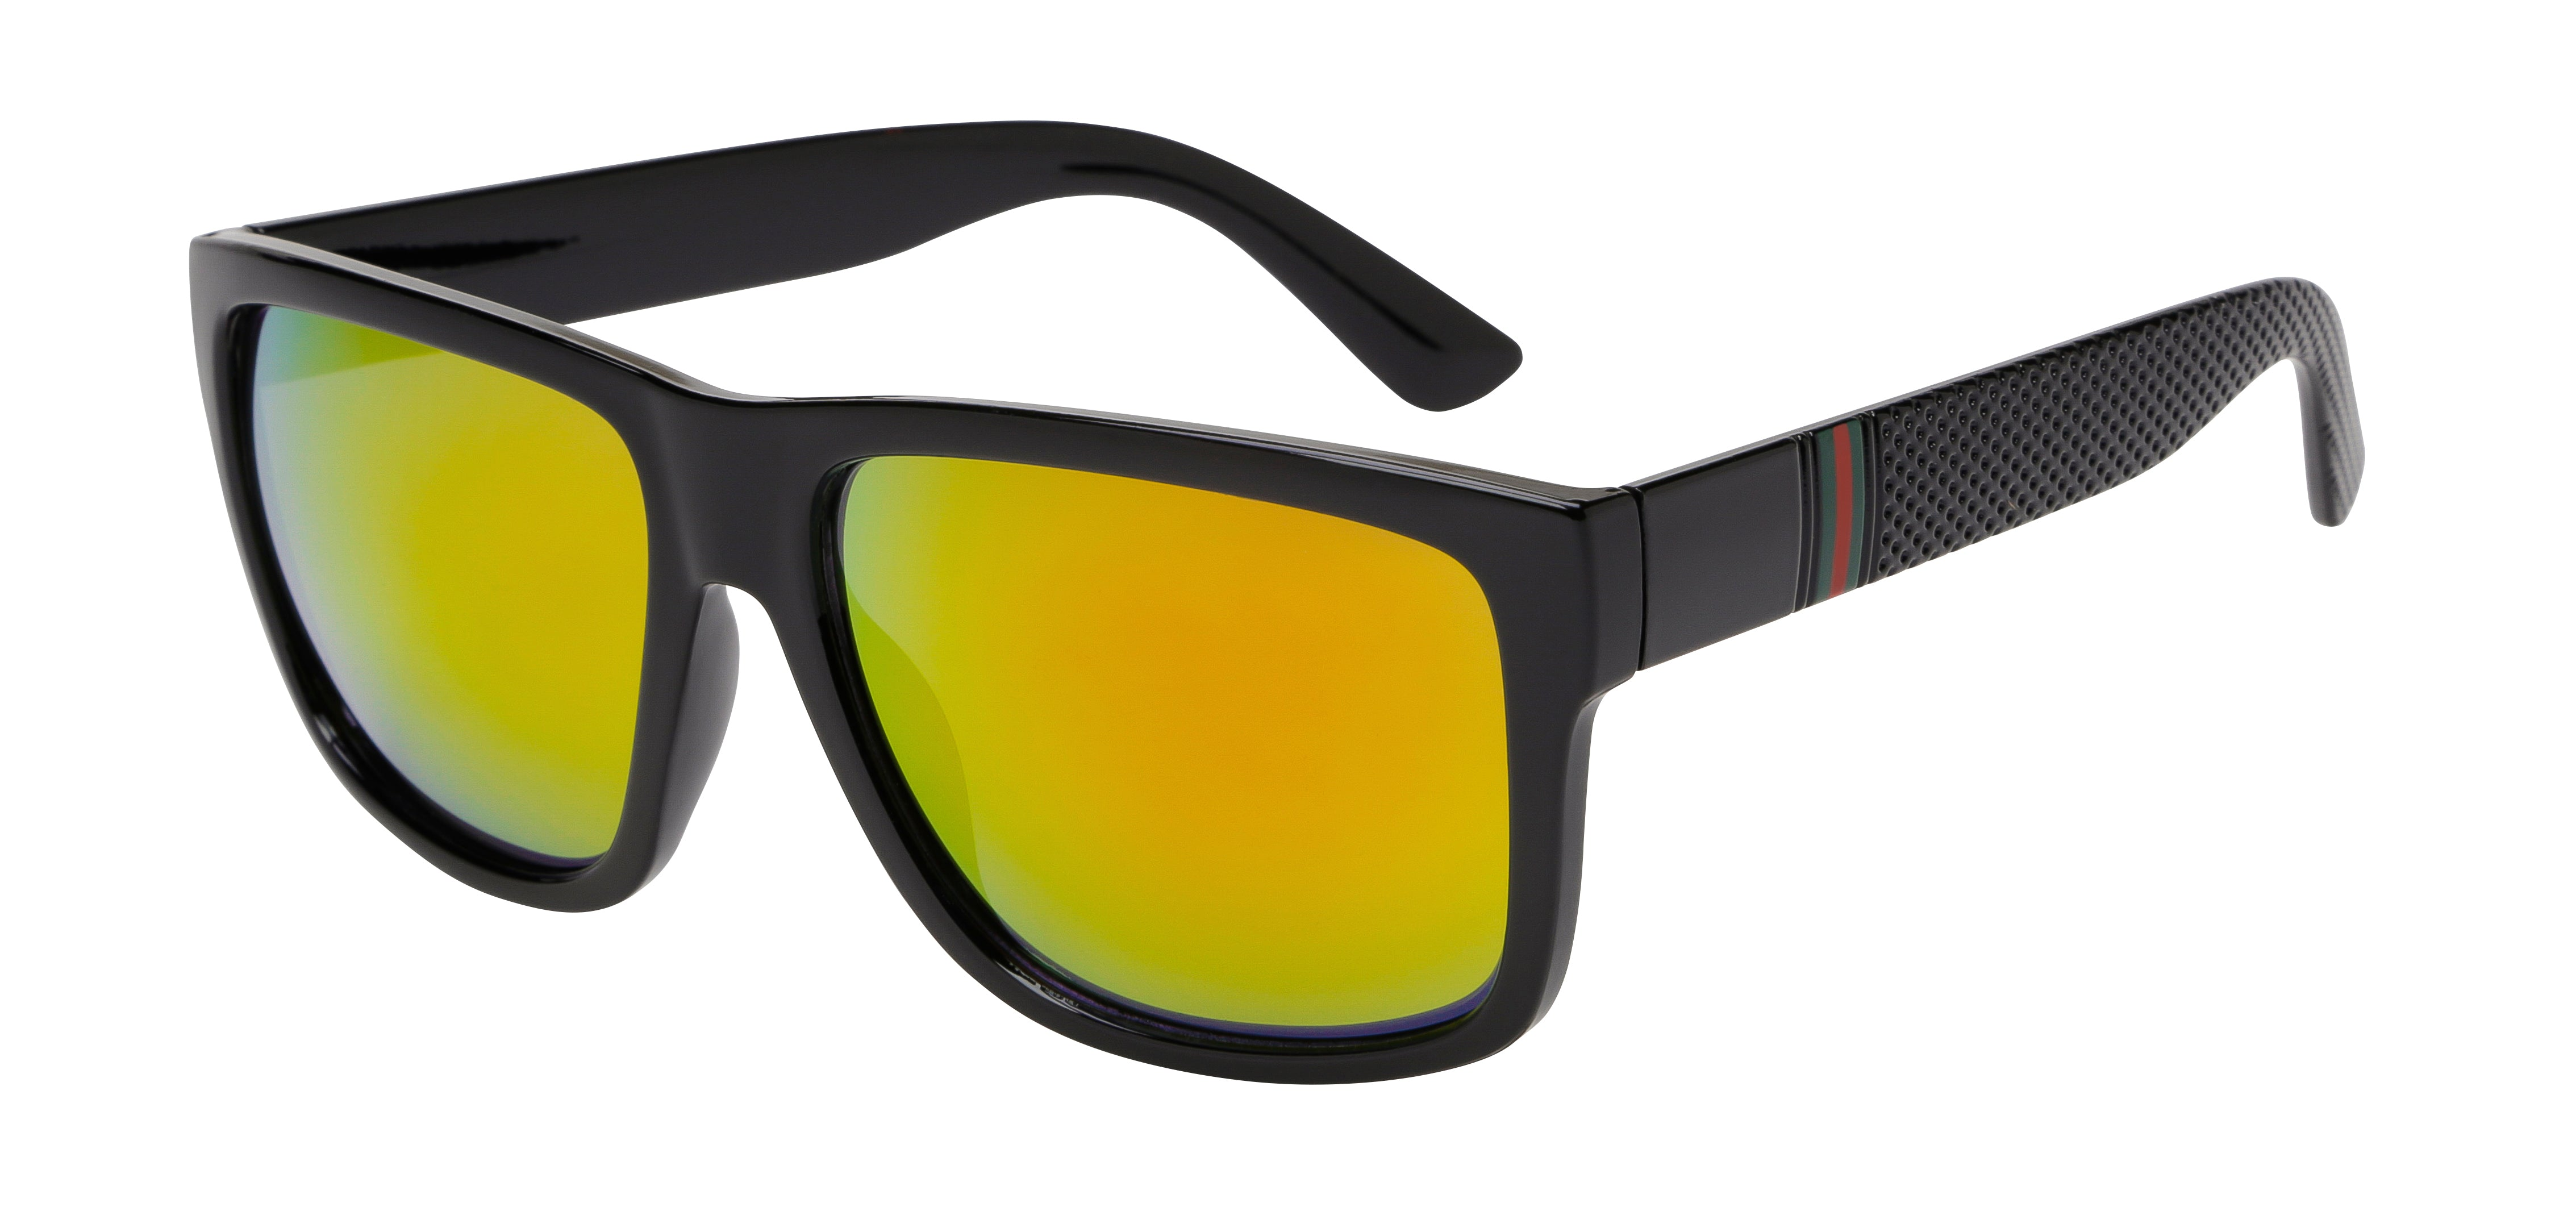 RB51PRV - Polarized Sport Sunglasses w/ Revo Lens